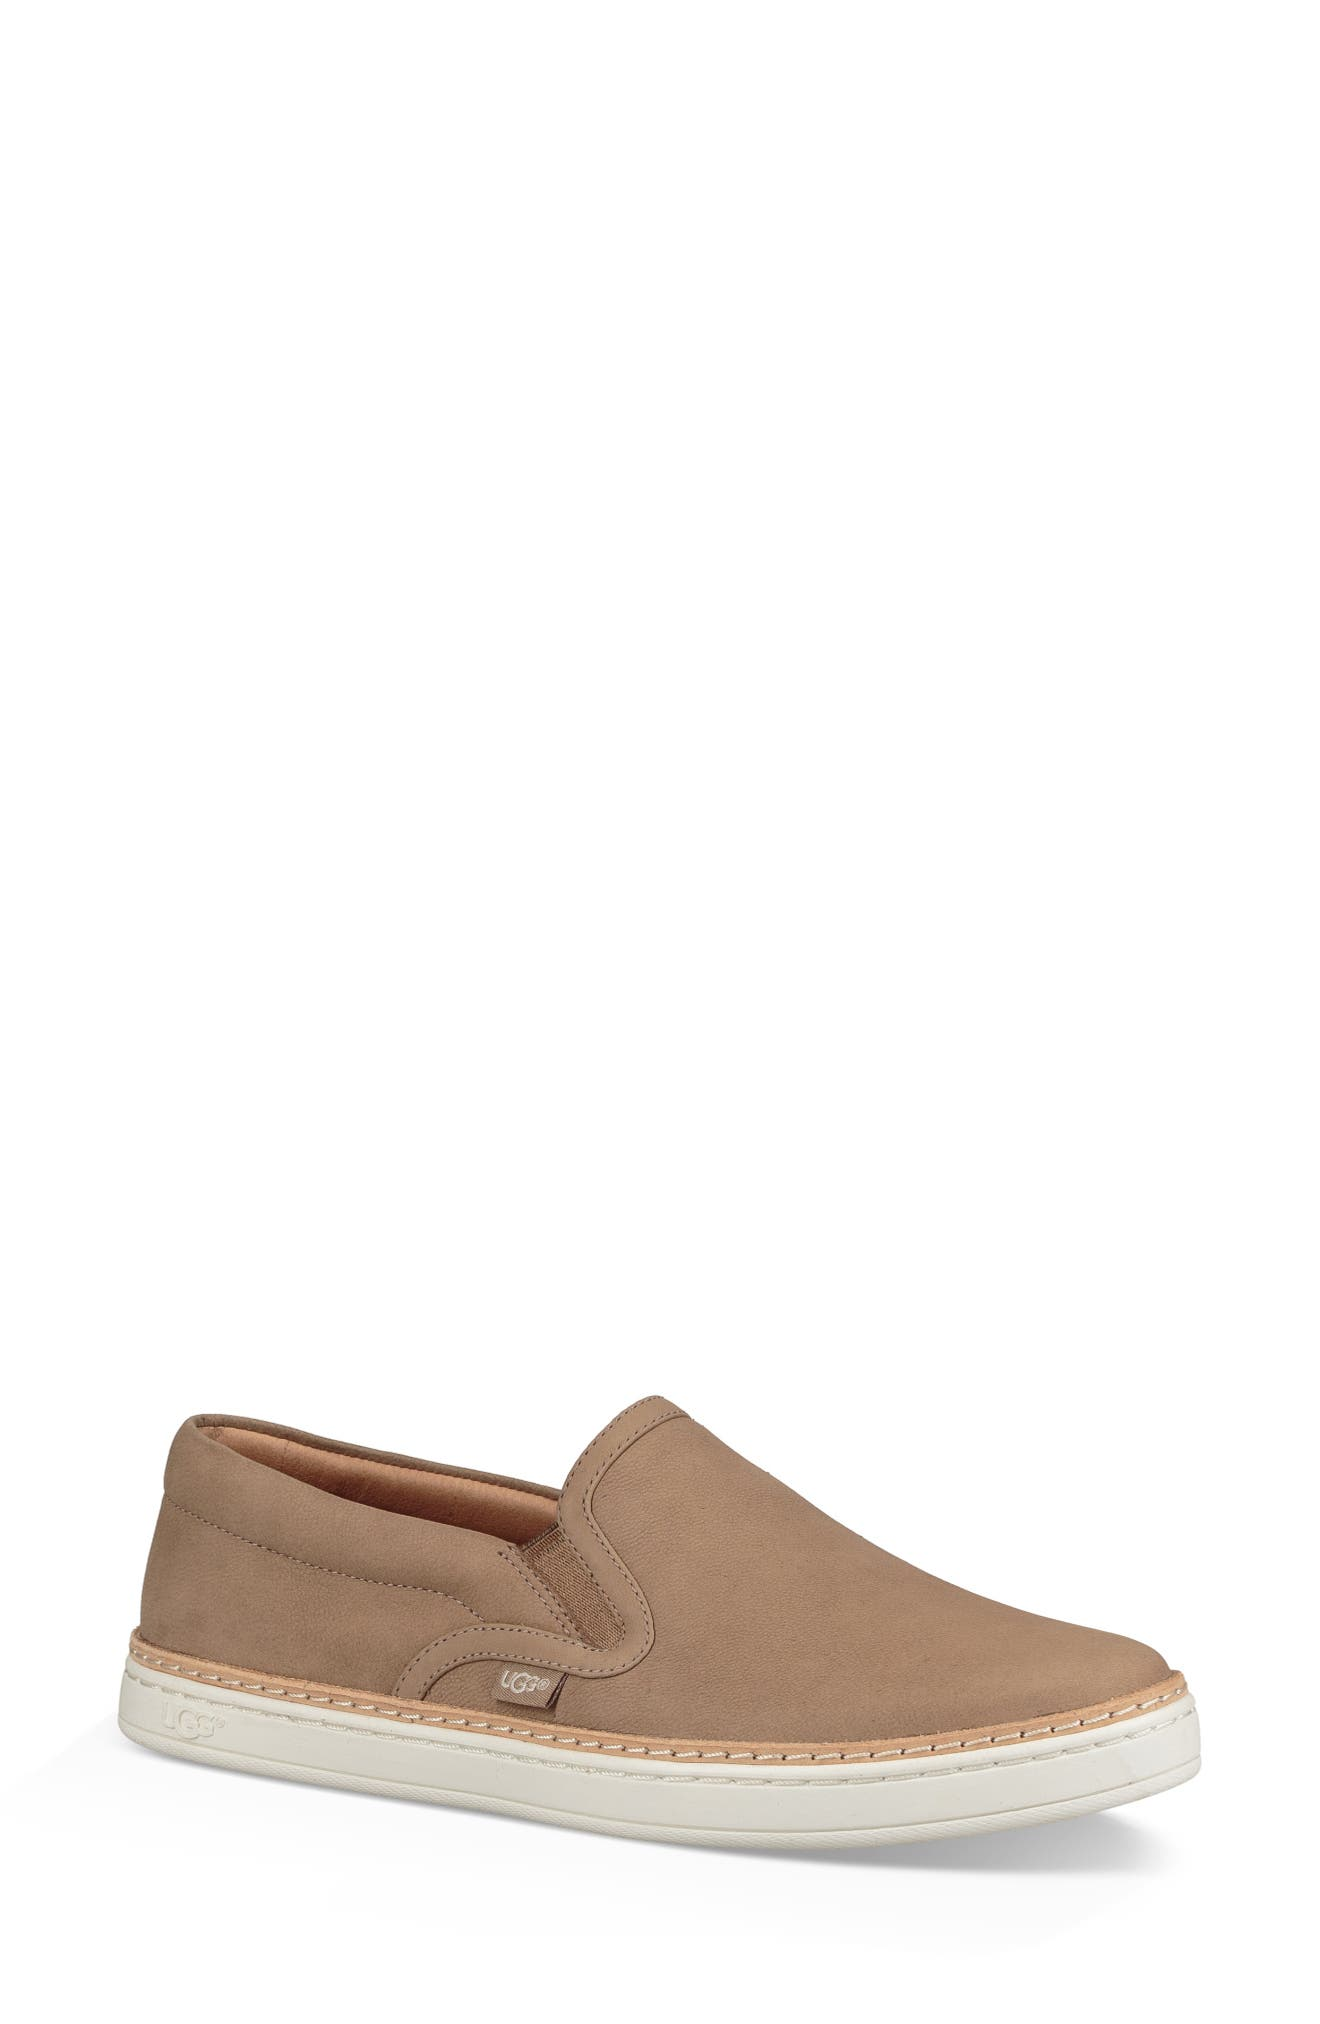 Soleda Slip-On Sneaker,                         Main,                         color, Fawn Leather